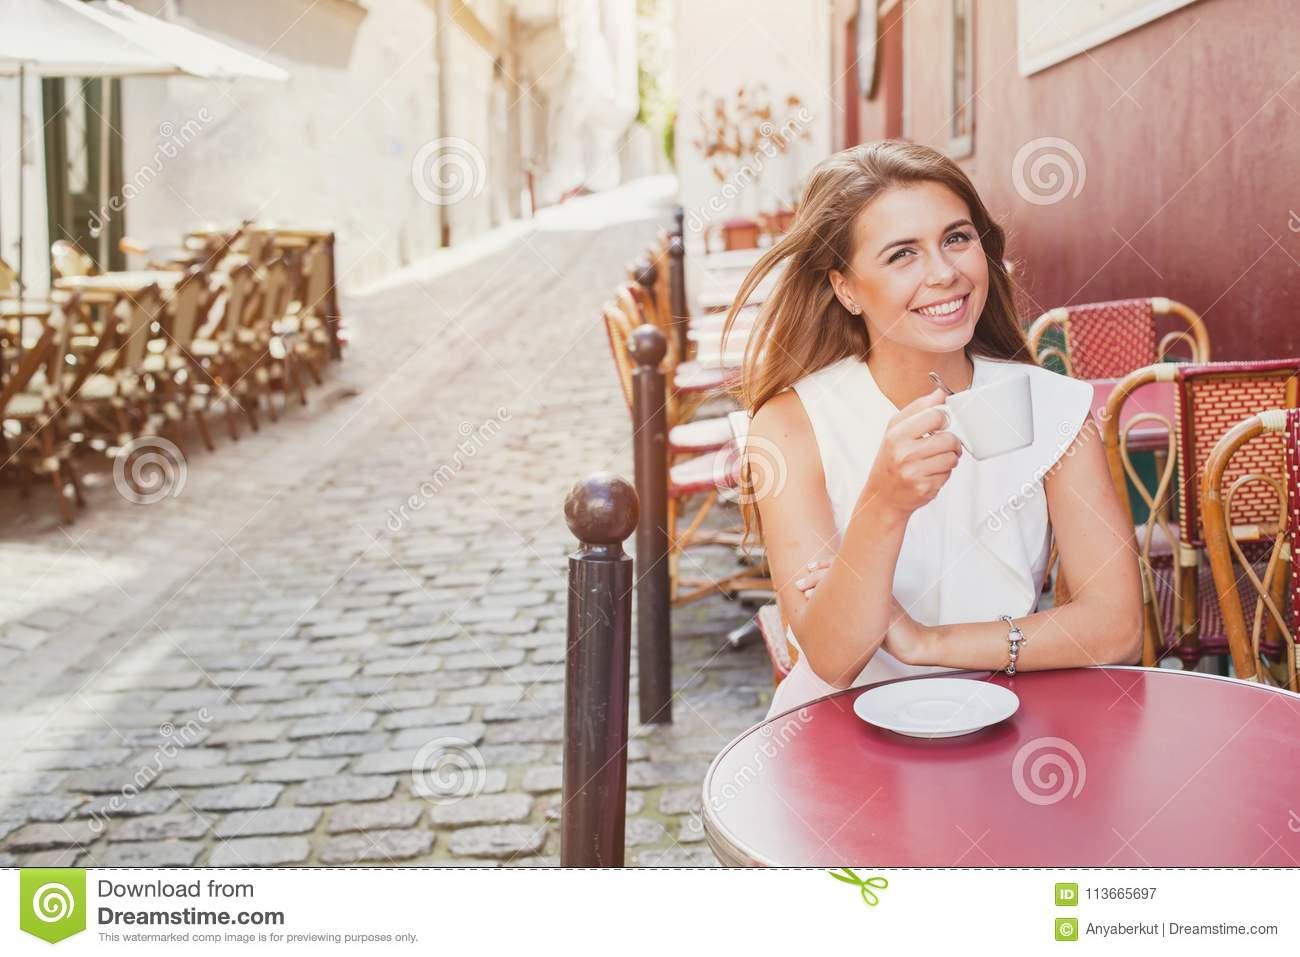 Smiling woman drinking coffee in street cafe